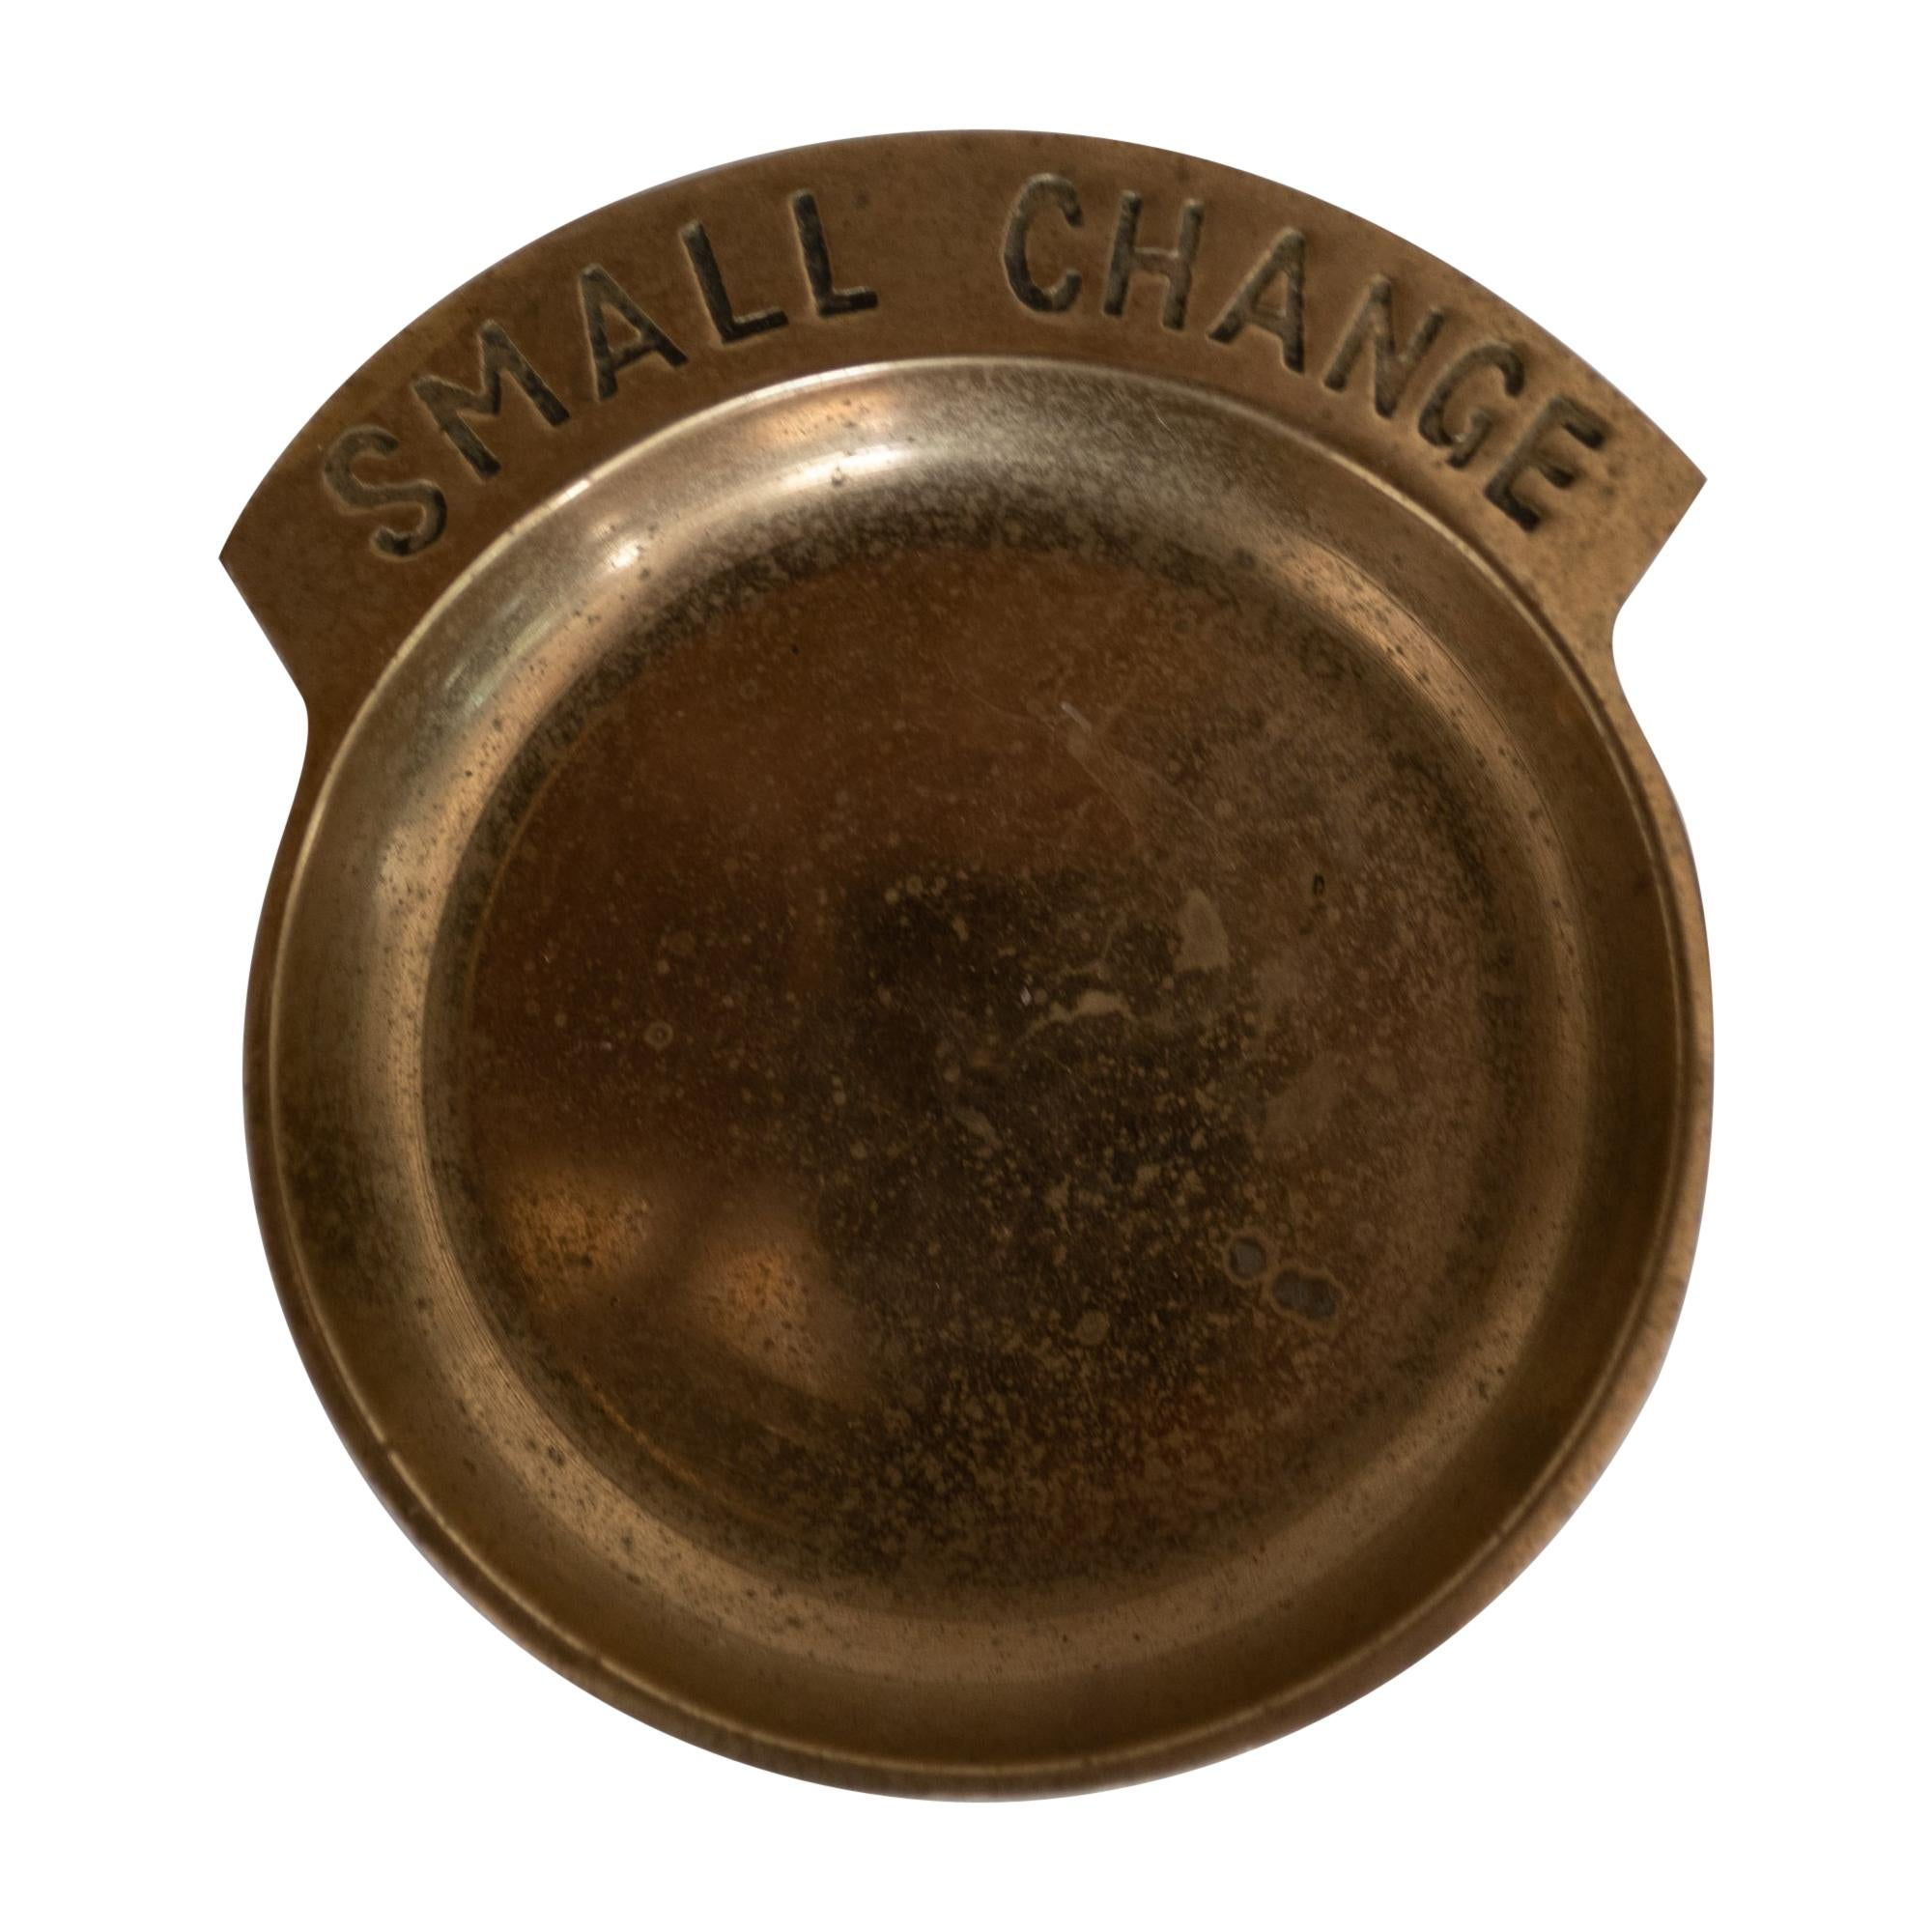 Brass Small Change Catch All, 1970s